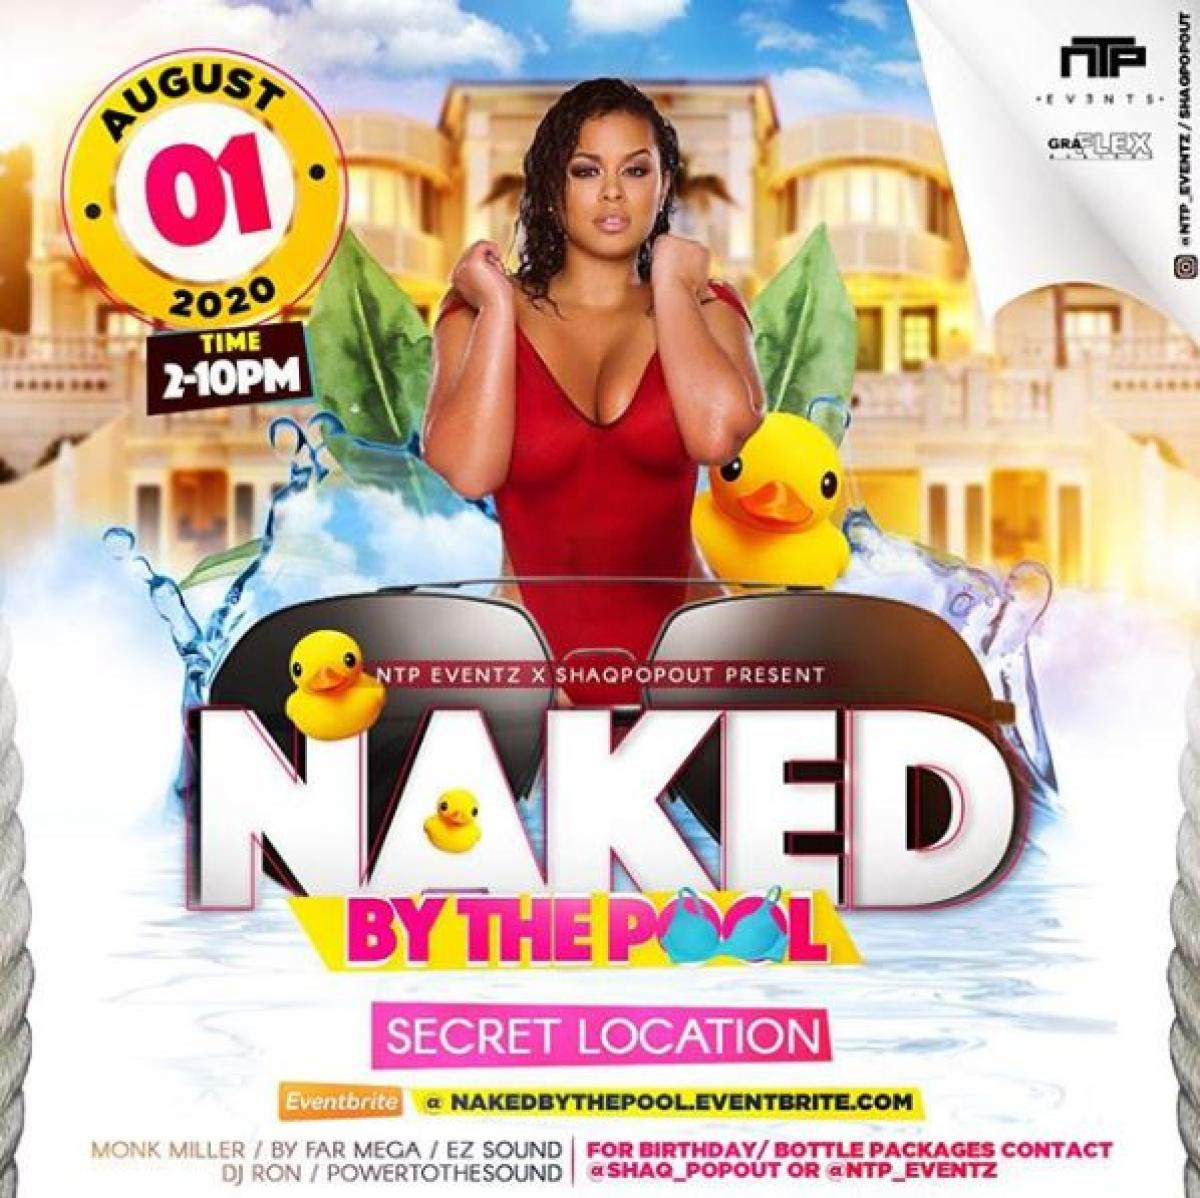 Naked By The Pool flyer or graphic.